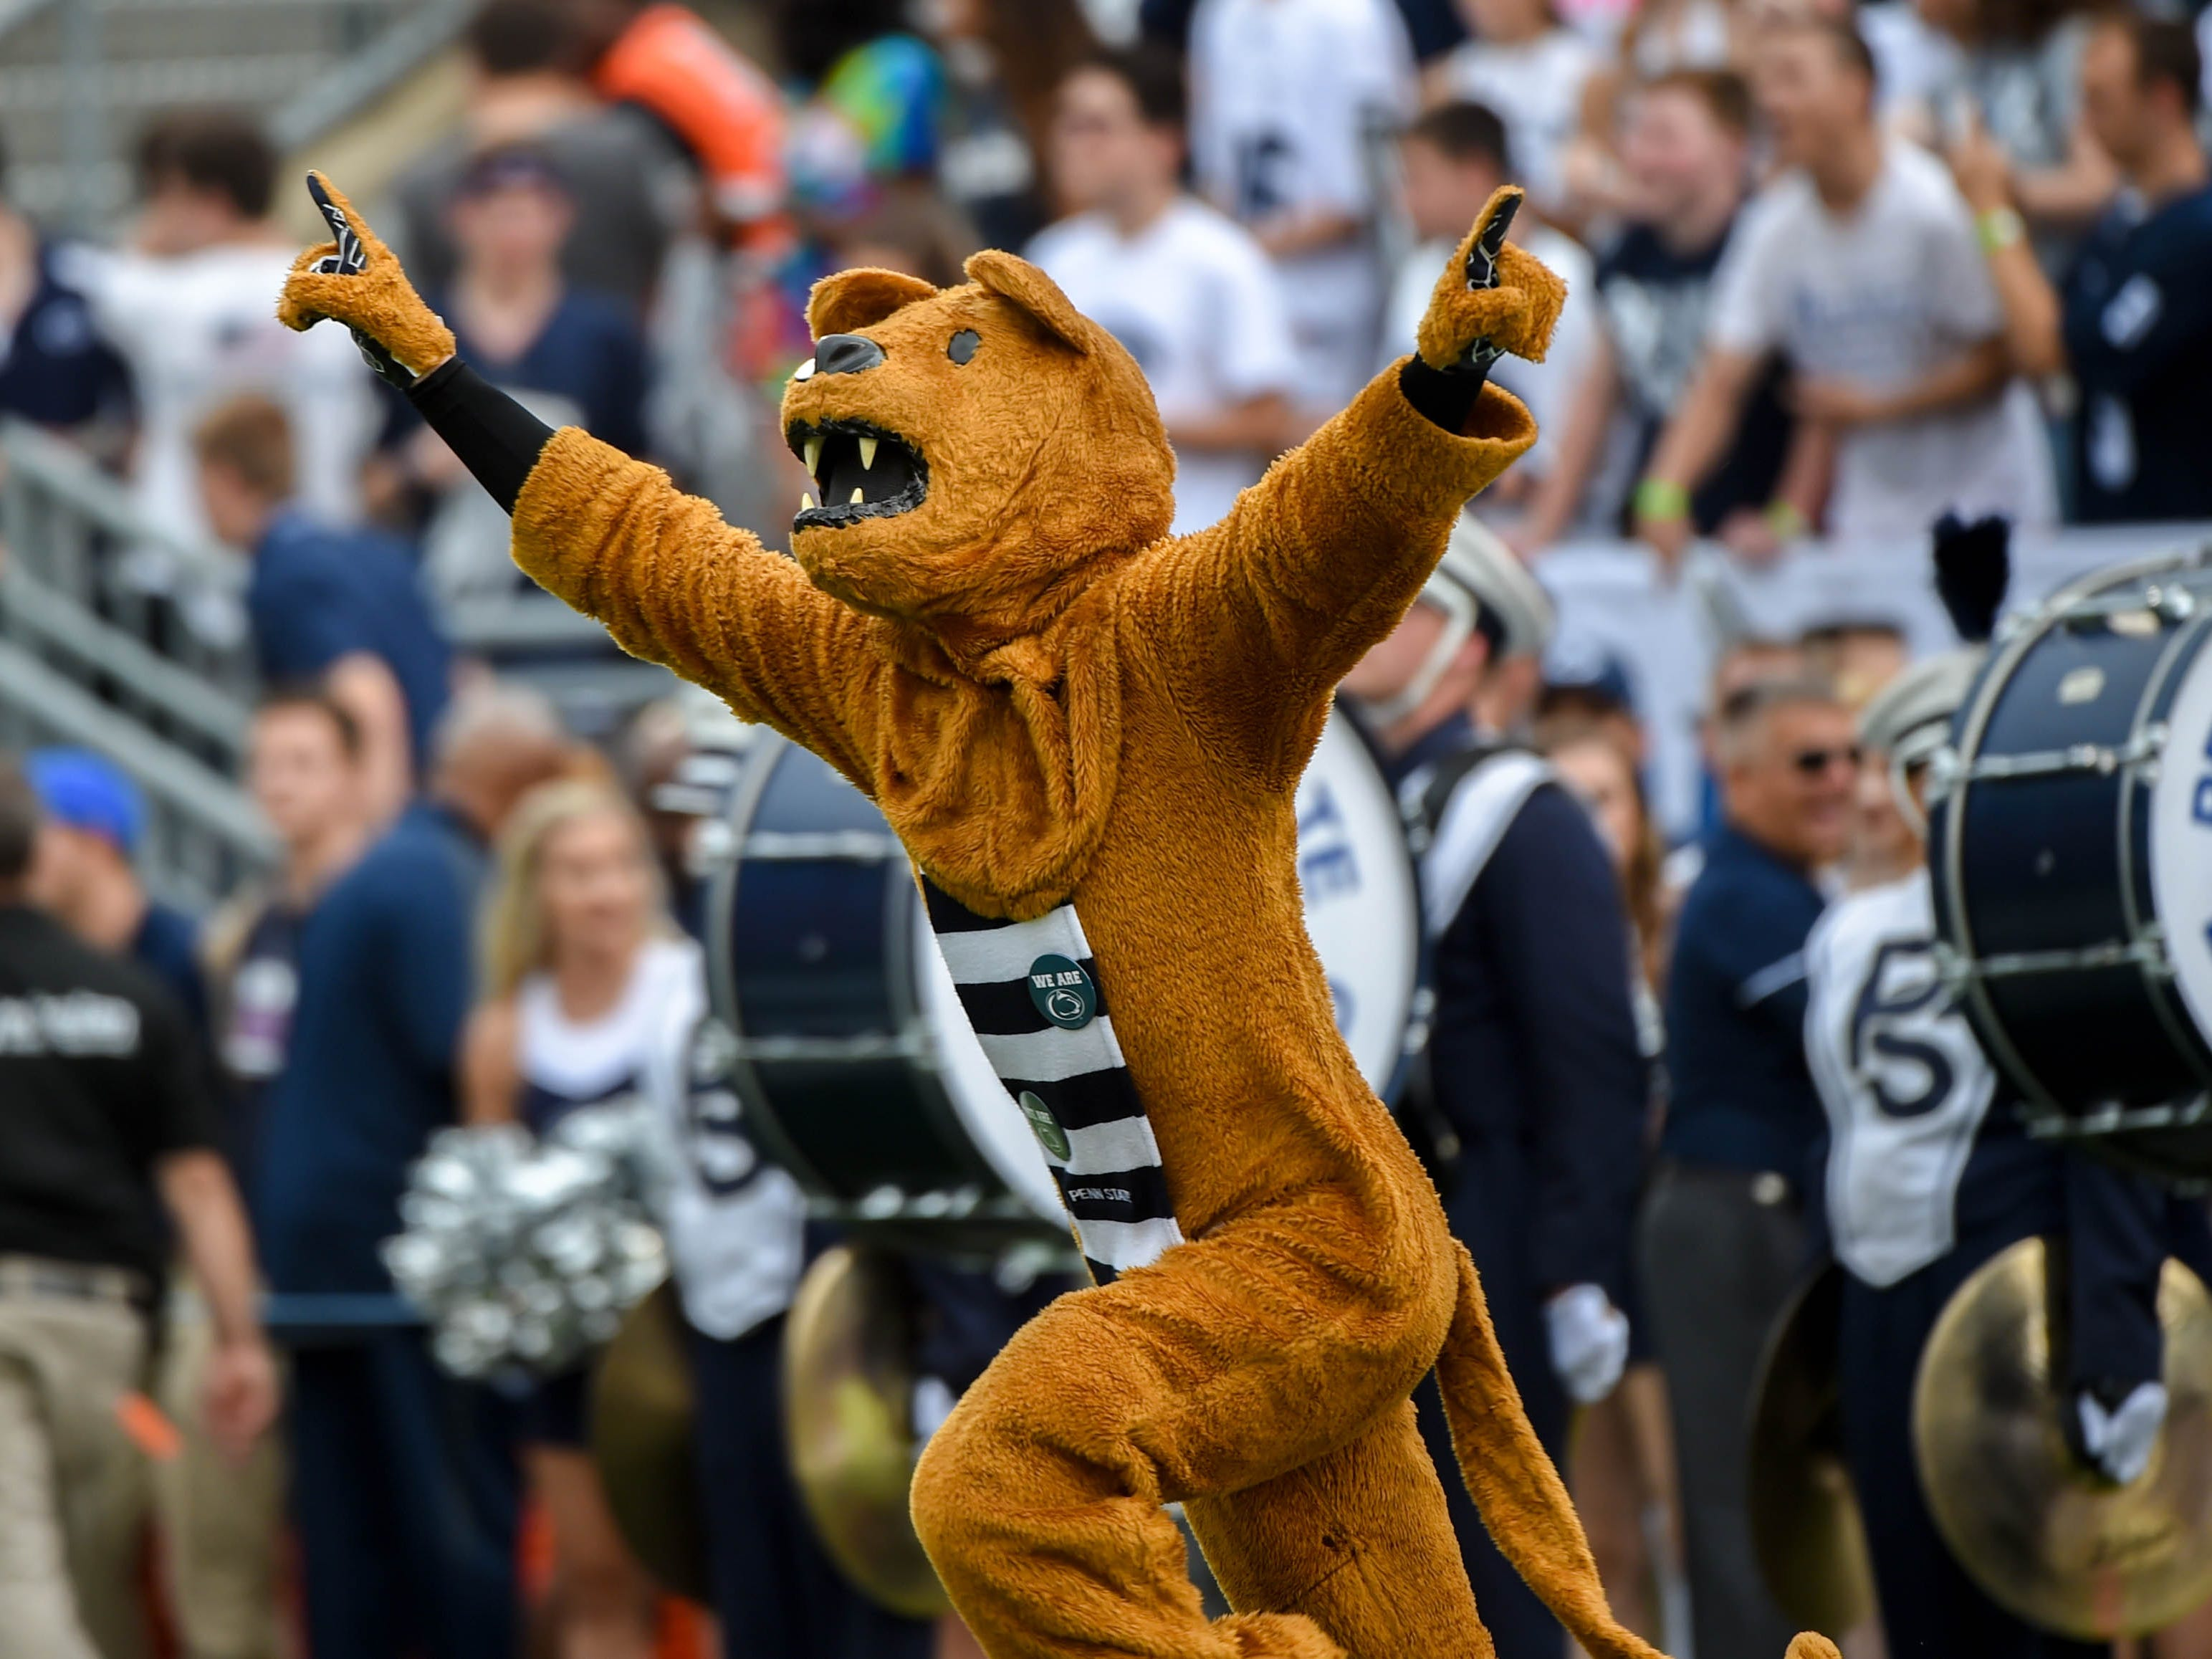 The Nittany Lion charges onto the field before the Penn State home opener on September 1.